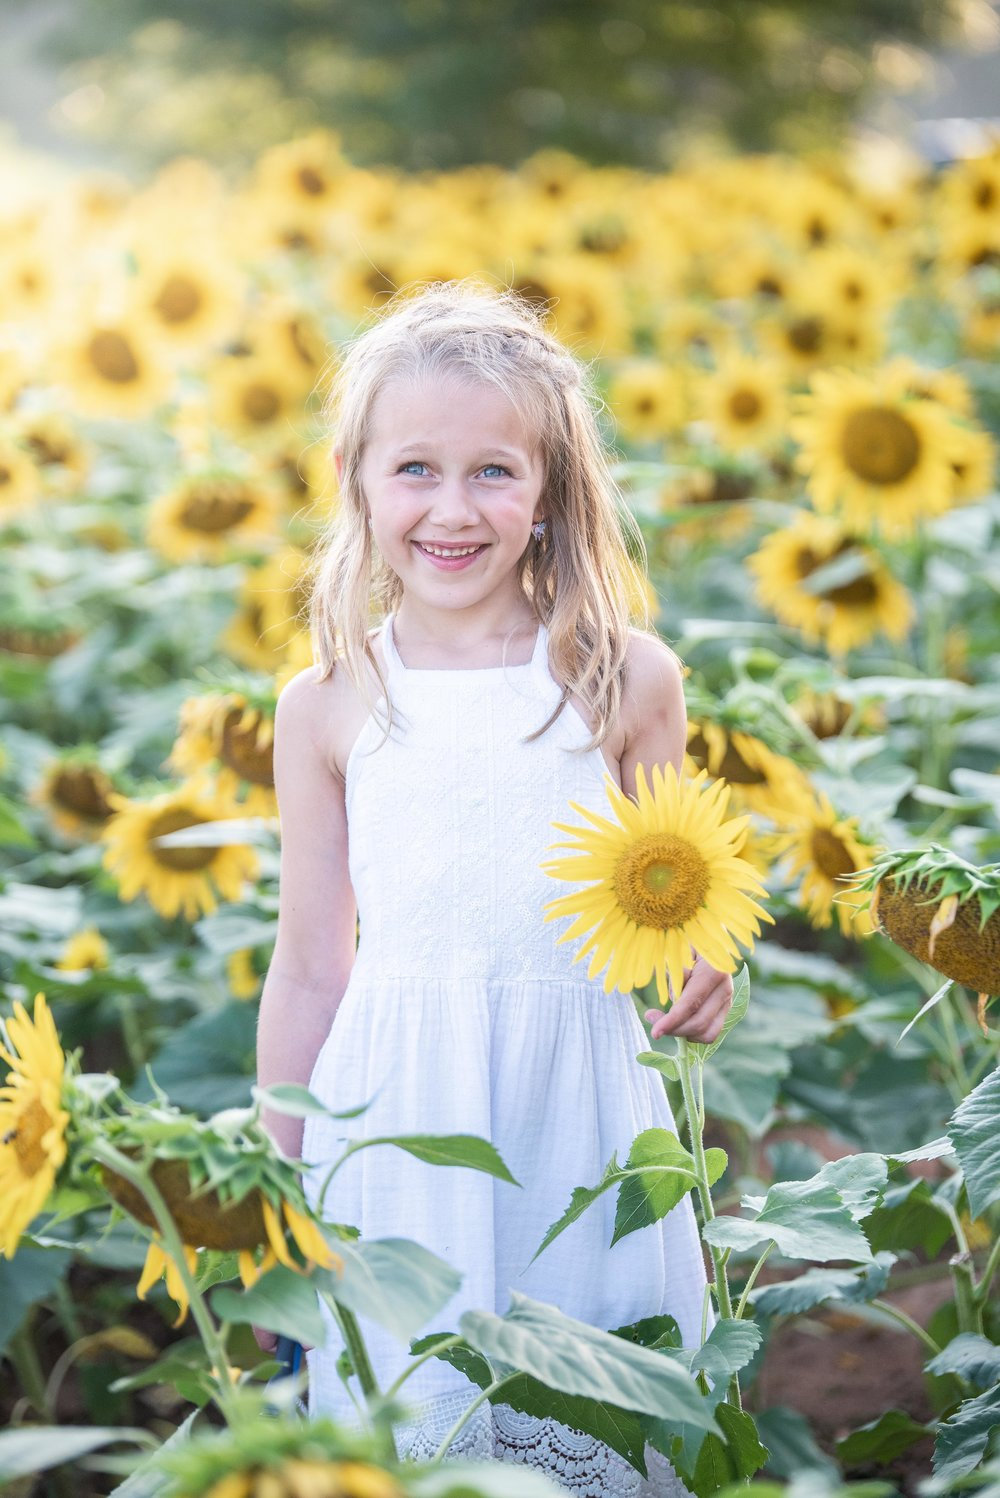 Dogwood Farm - Sunflower Field Photography Session - Sunflower Family Portraits - Fall Family Portraits - Summer Family Portraits - NC Photographer - NC Wedding Photographer - High Point Wedding Photographer -2.jpg